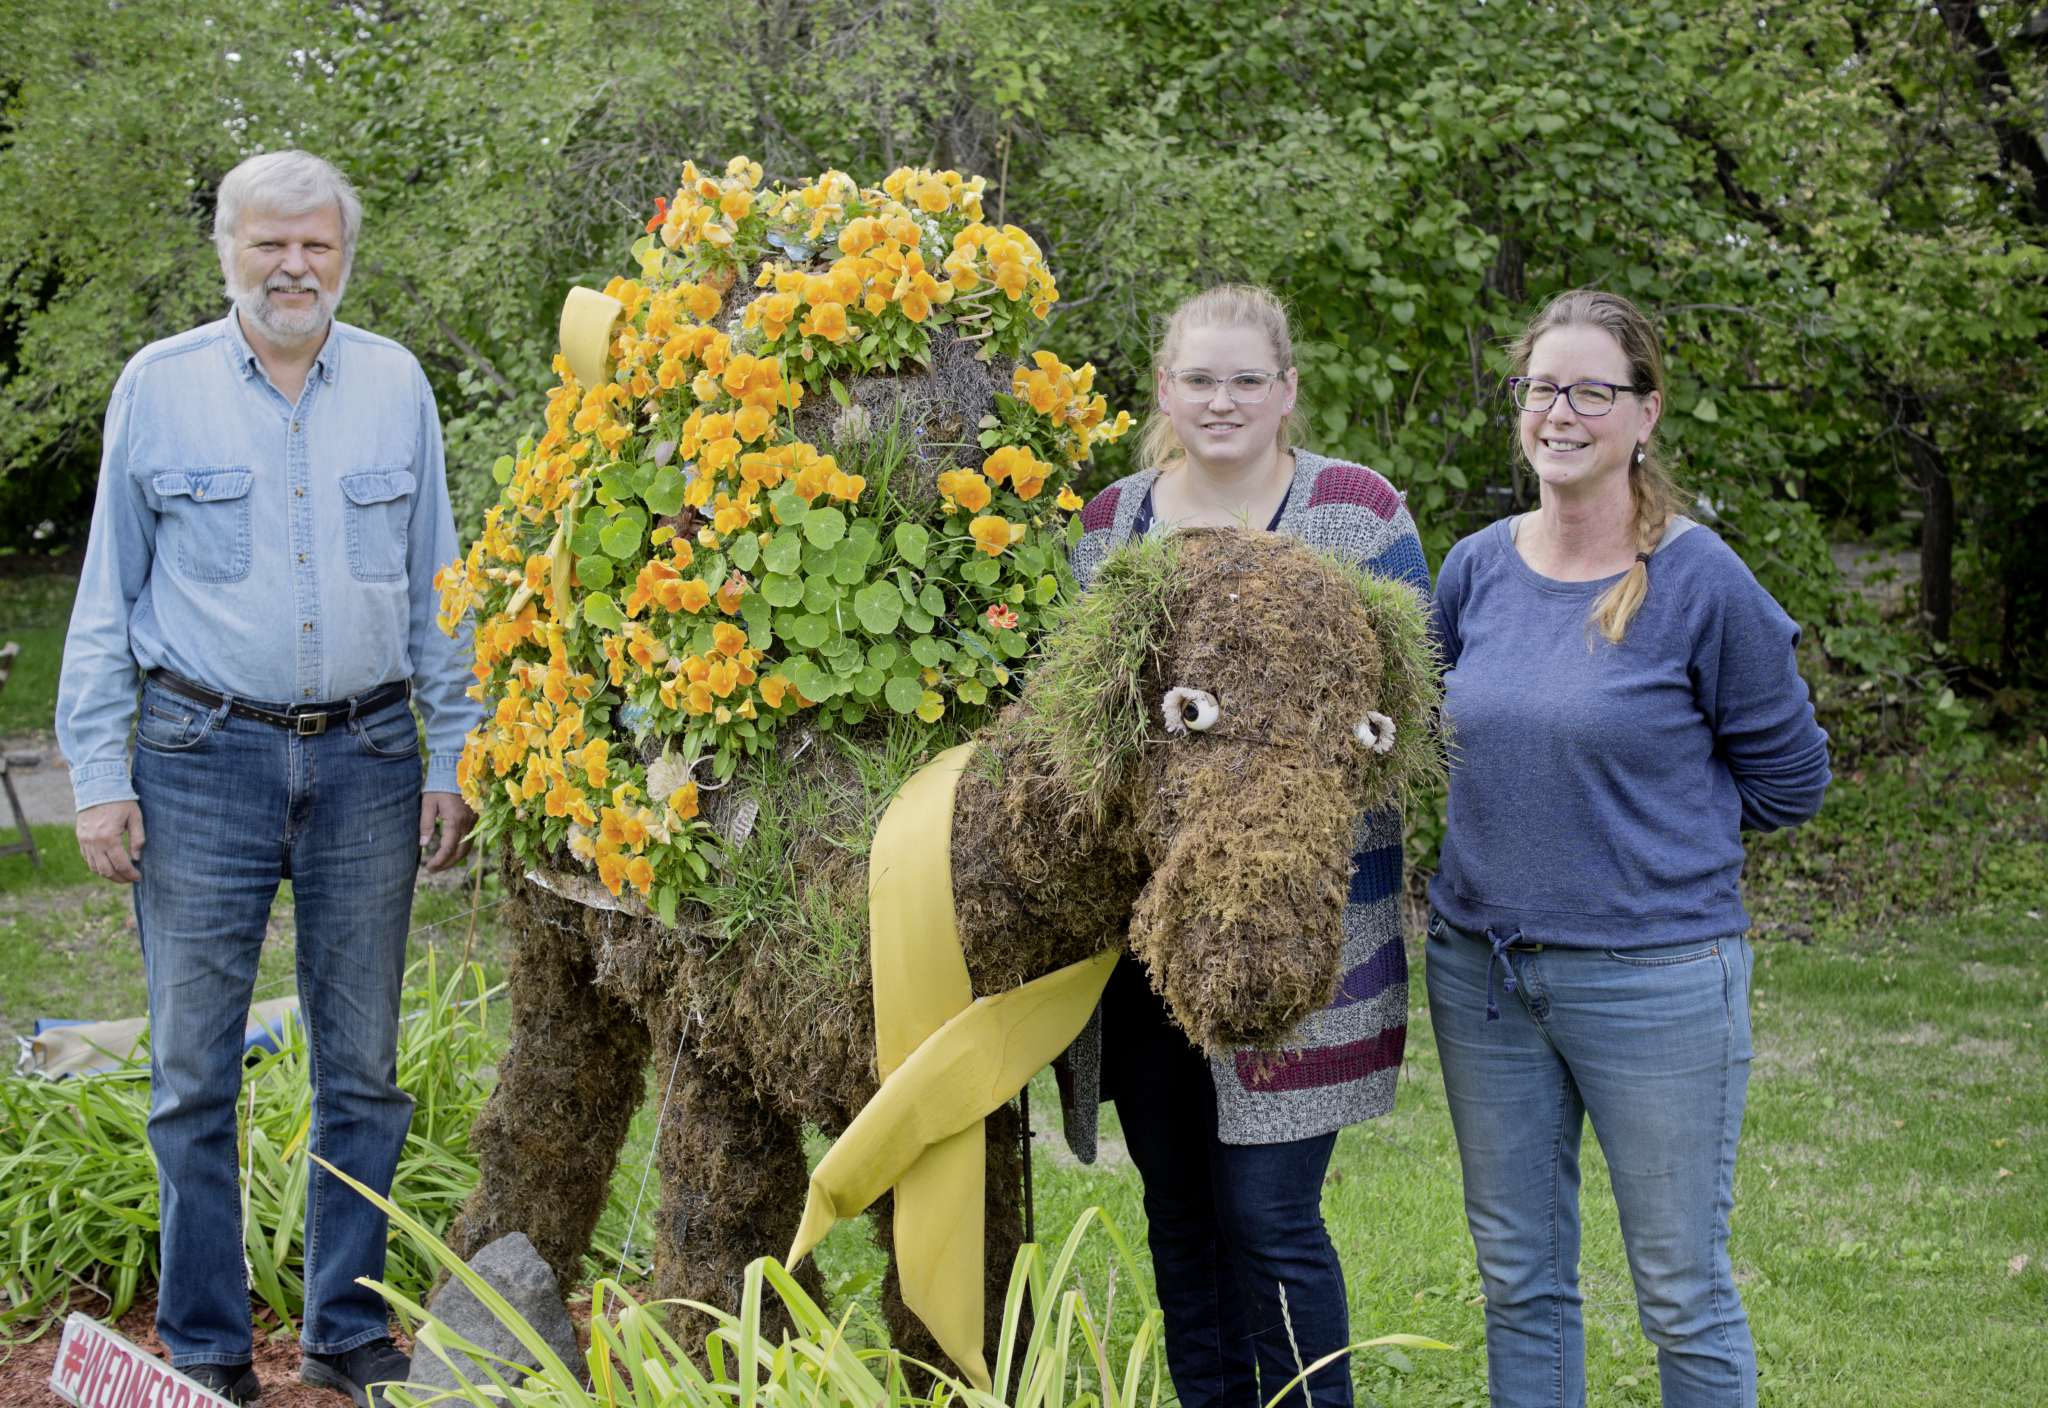 Wednesday the Camel, named after the hump in the work week, has become an icon in the Wellington Crescent neighbourhood for its deep closet of costumes and seasonal attire. The Stewart family is responsible for the ongoing horticulture and design project. Pictured from left is Paul, Zoe, and Dawn Stewart.